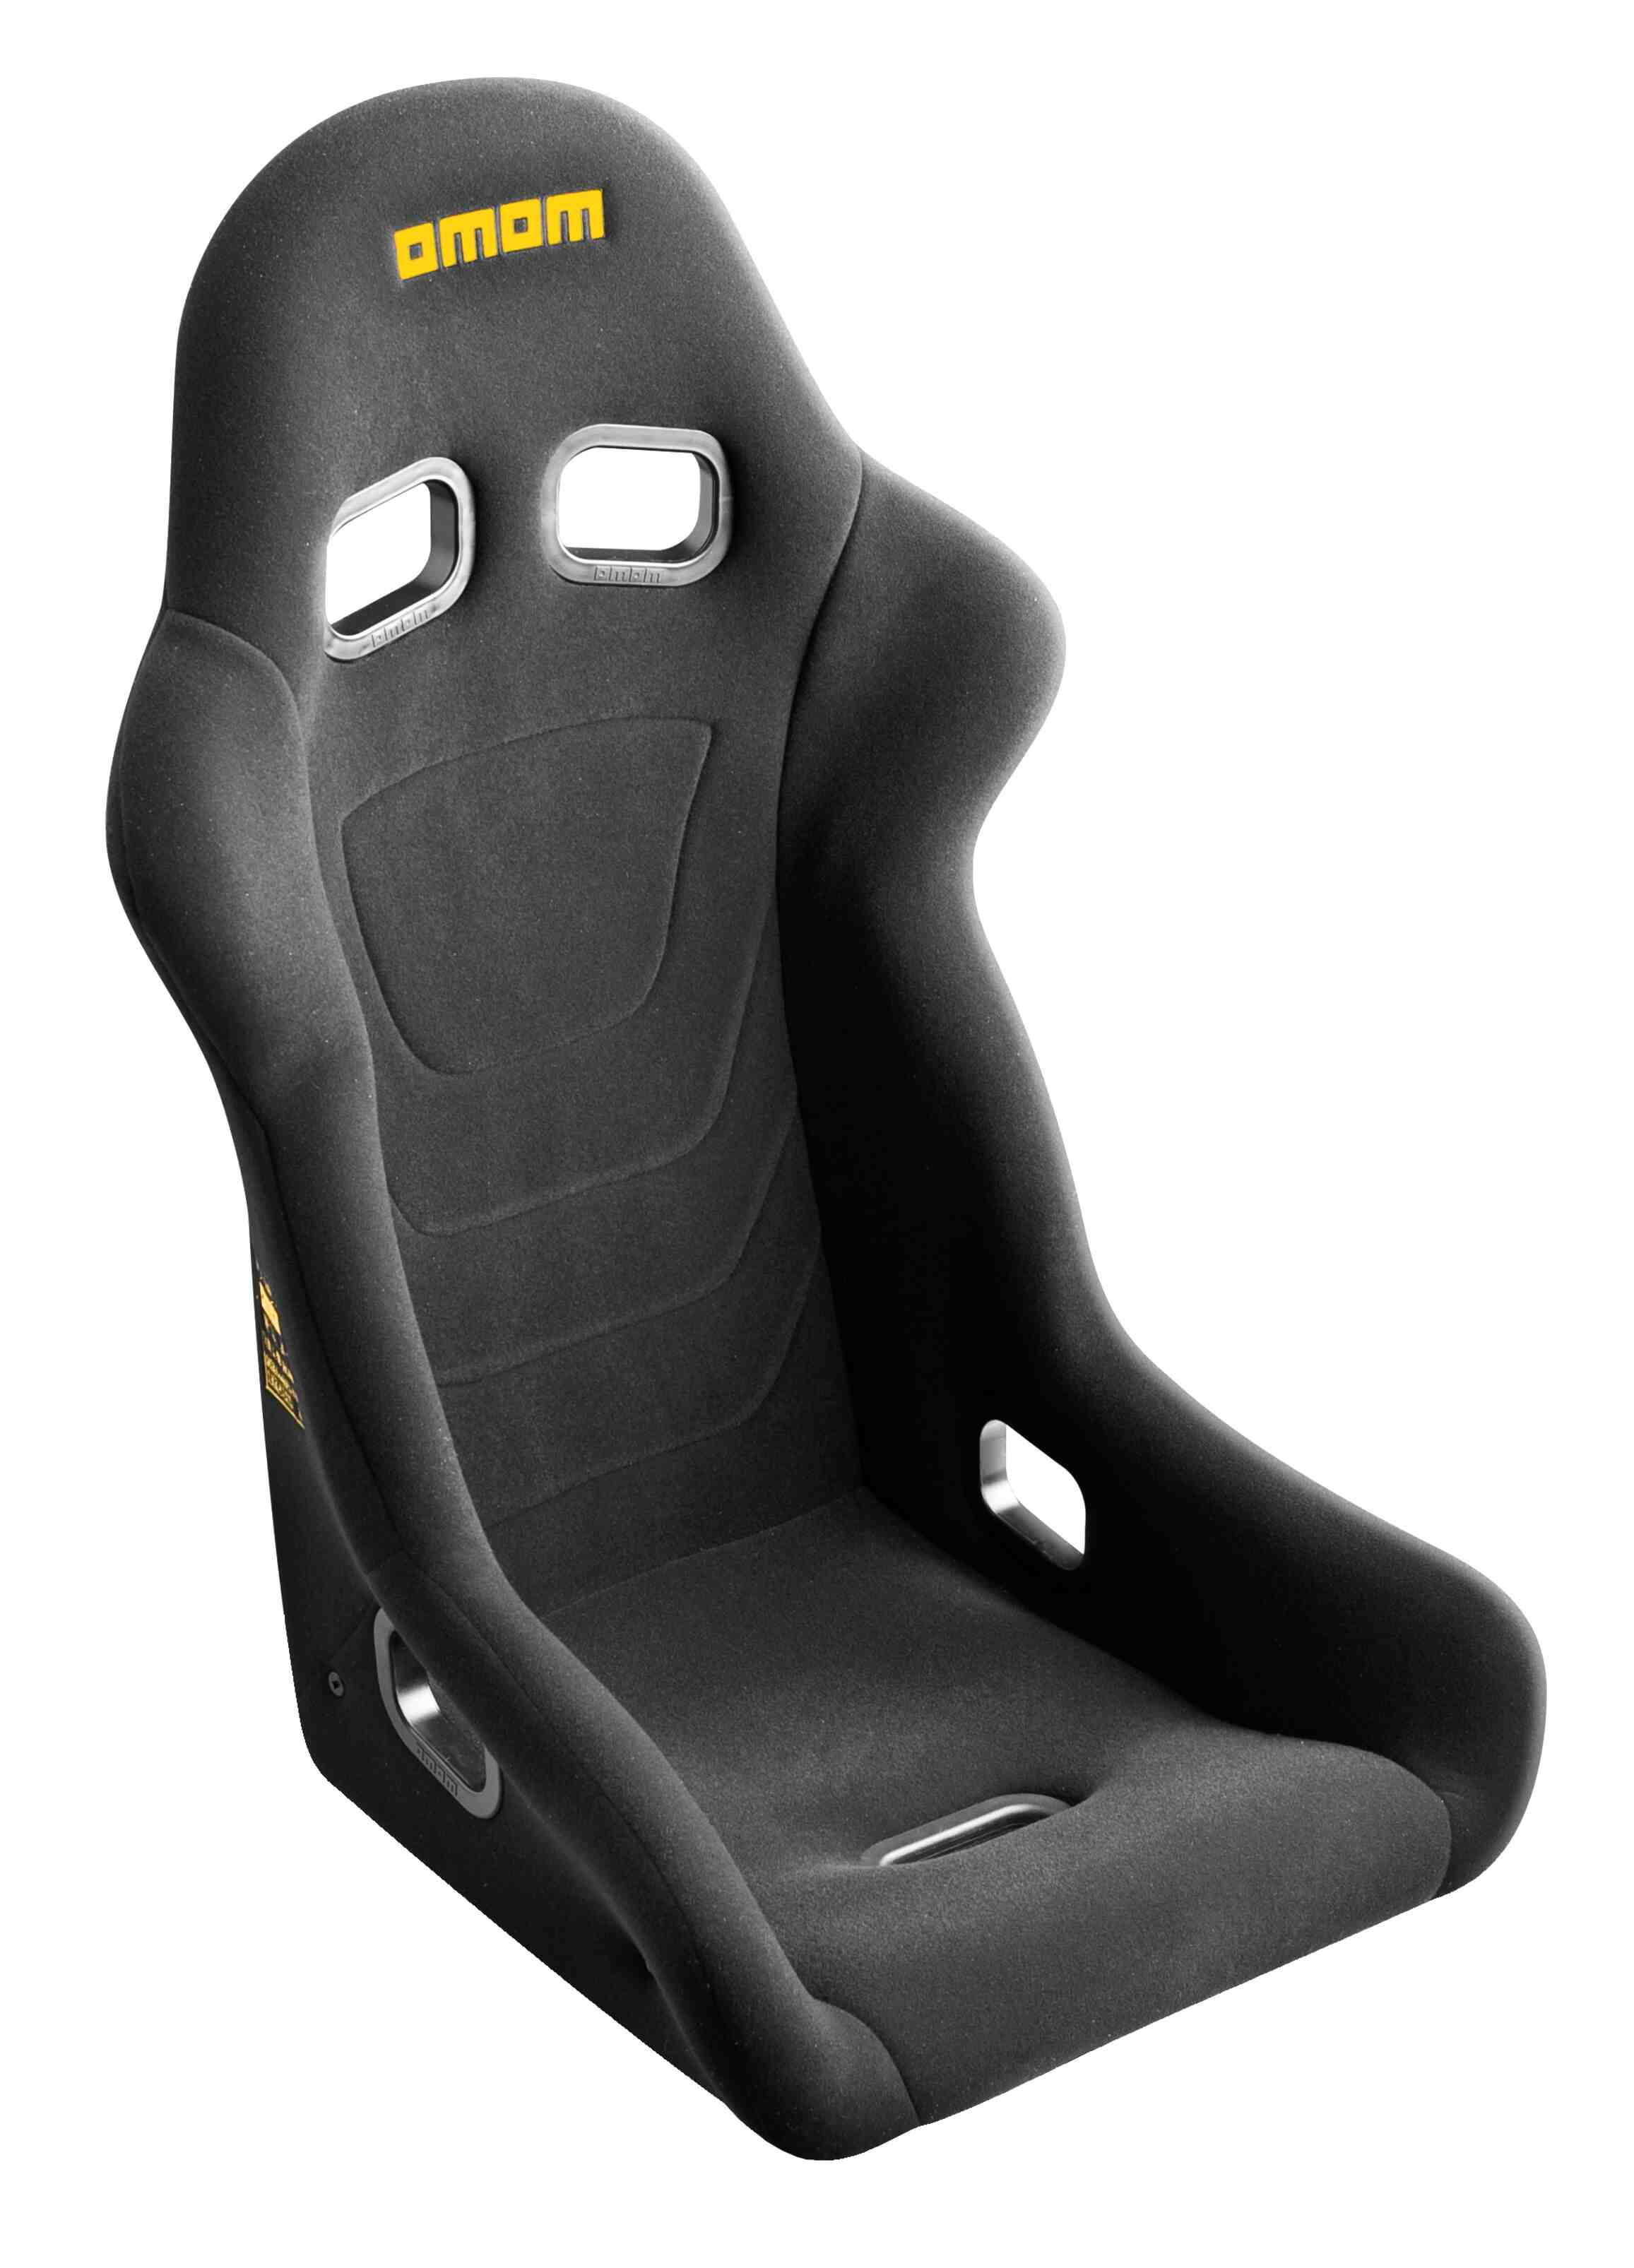 Race Seat For Sale In Uk 78 Second Hand Race Seats